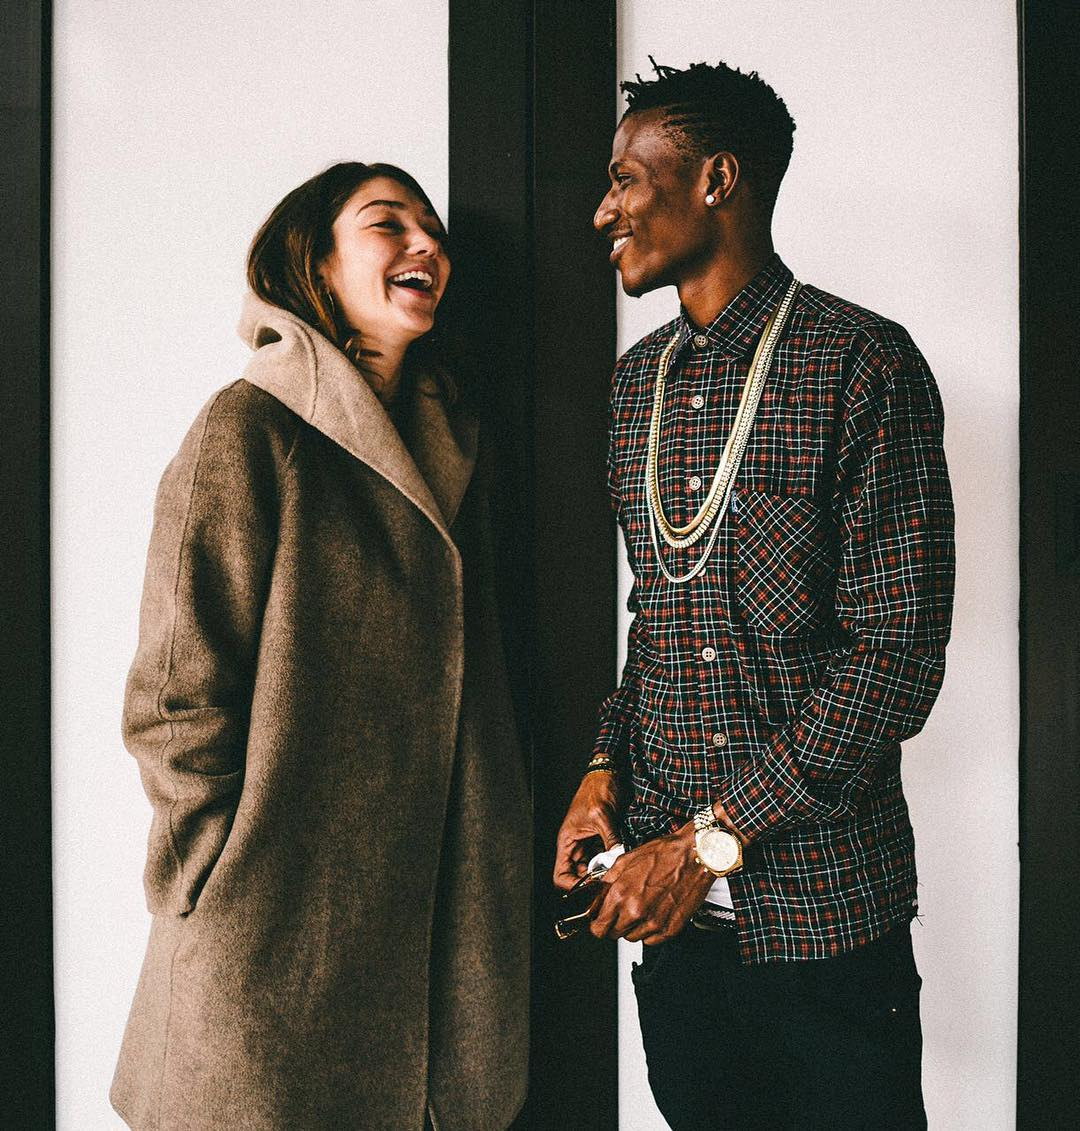 Octopizzo and fiancee